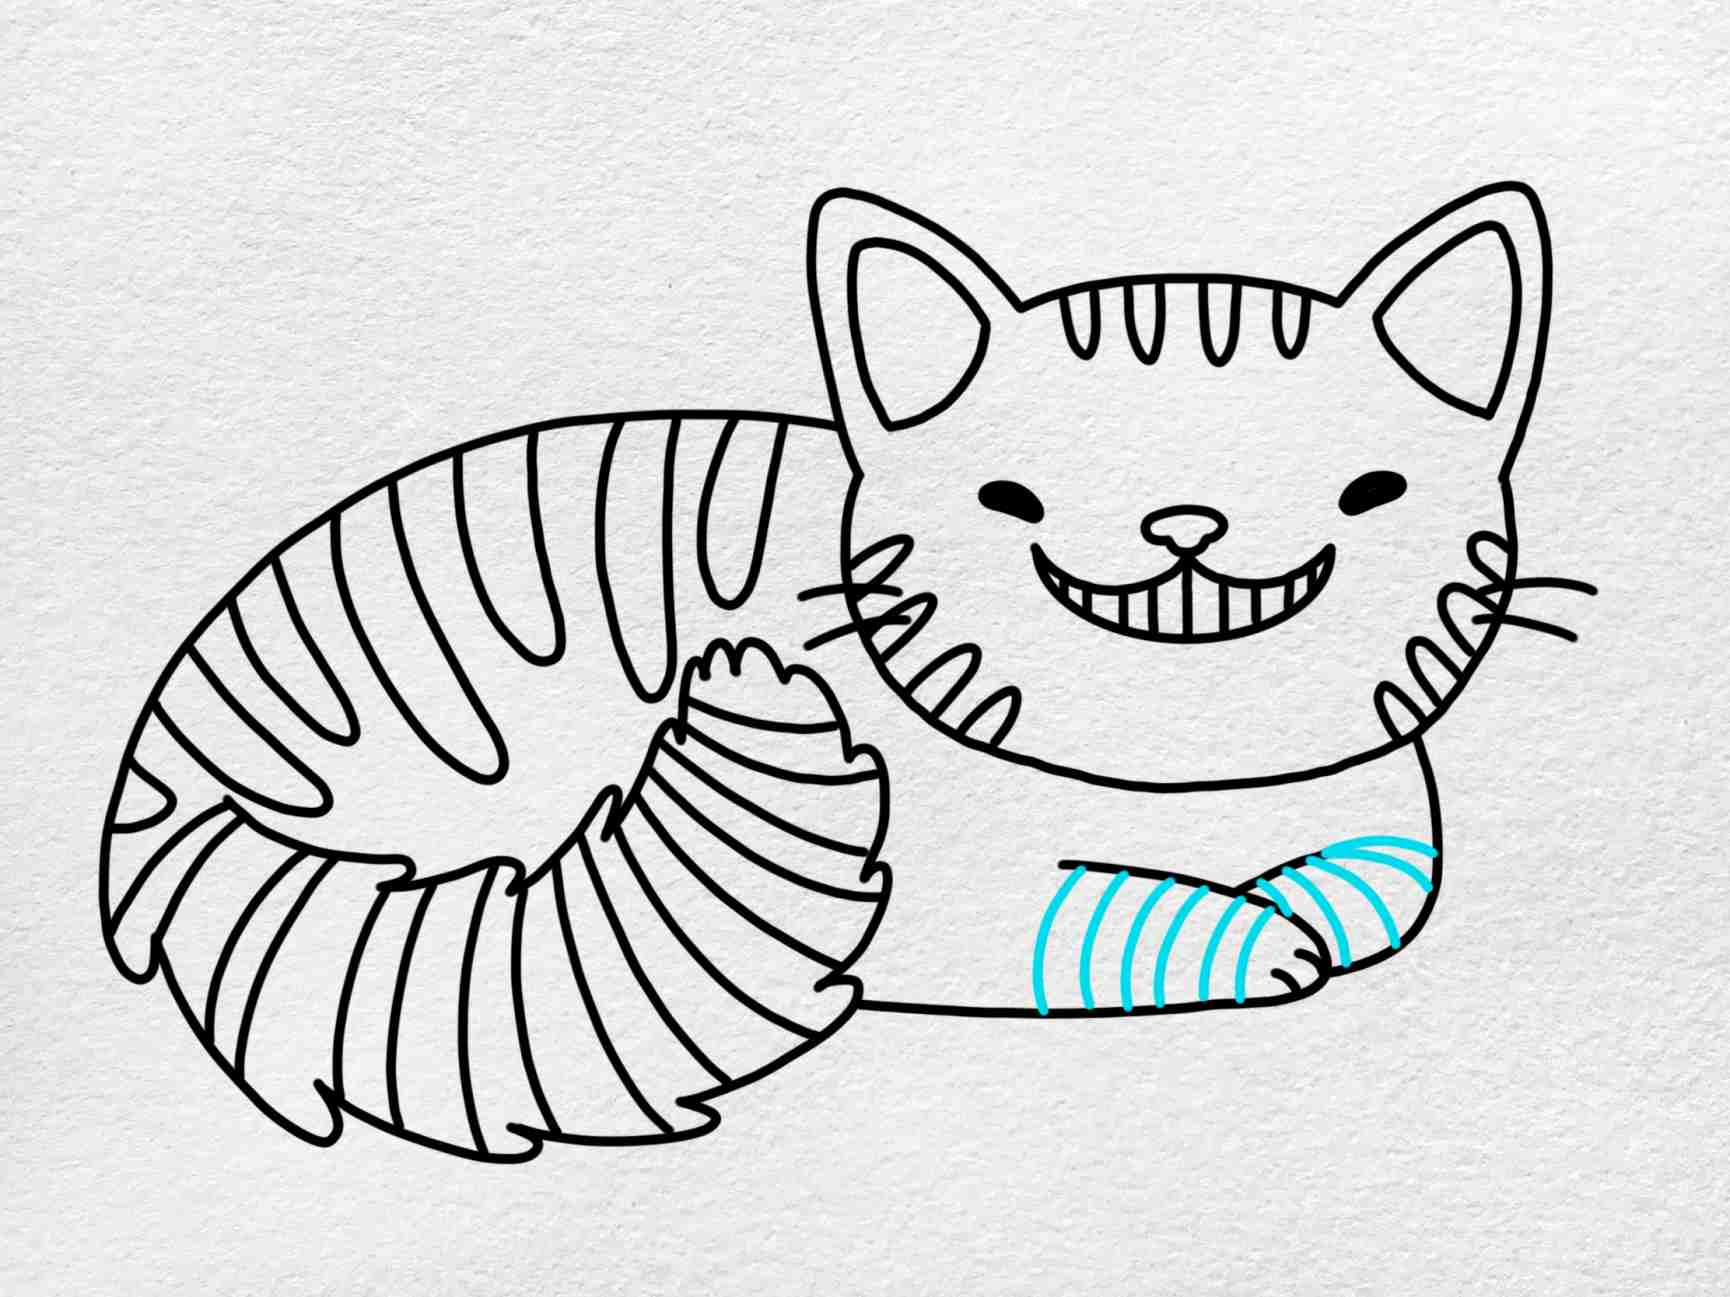 Cheshire Cat Drawing: Step 8